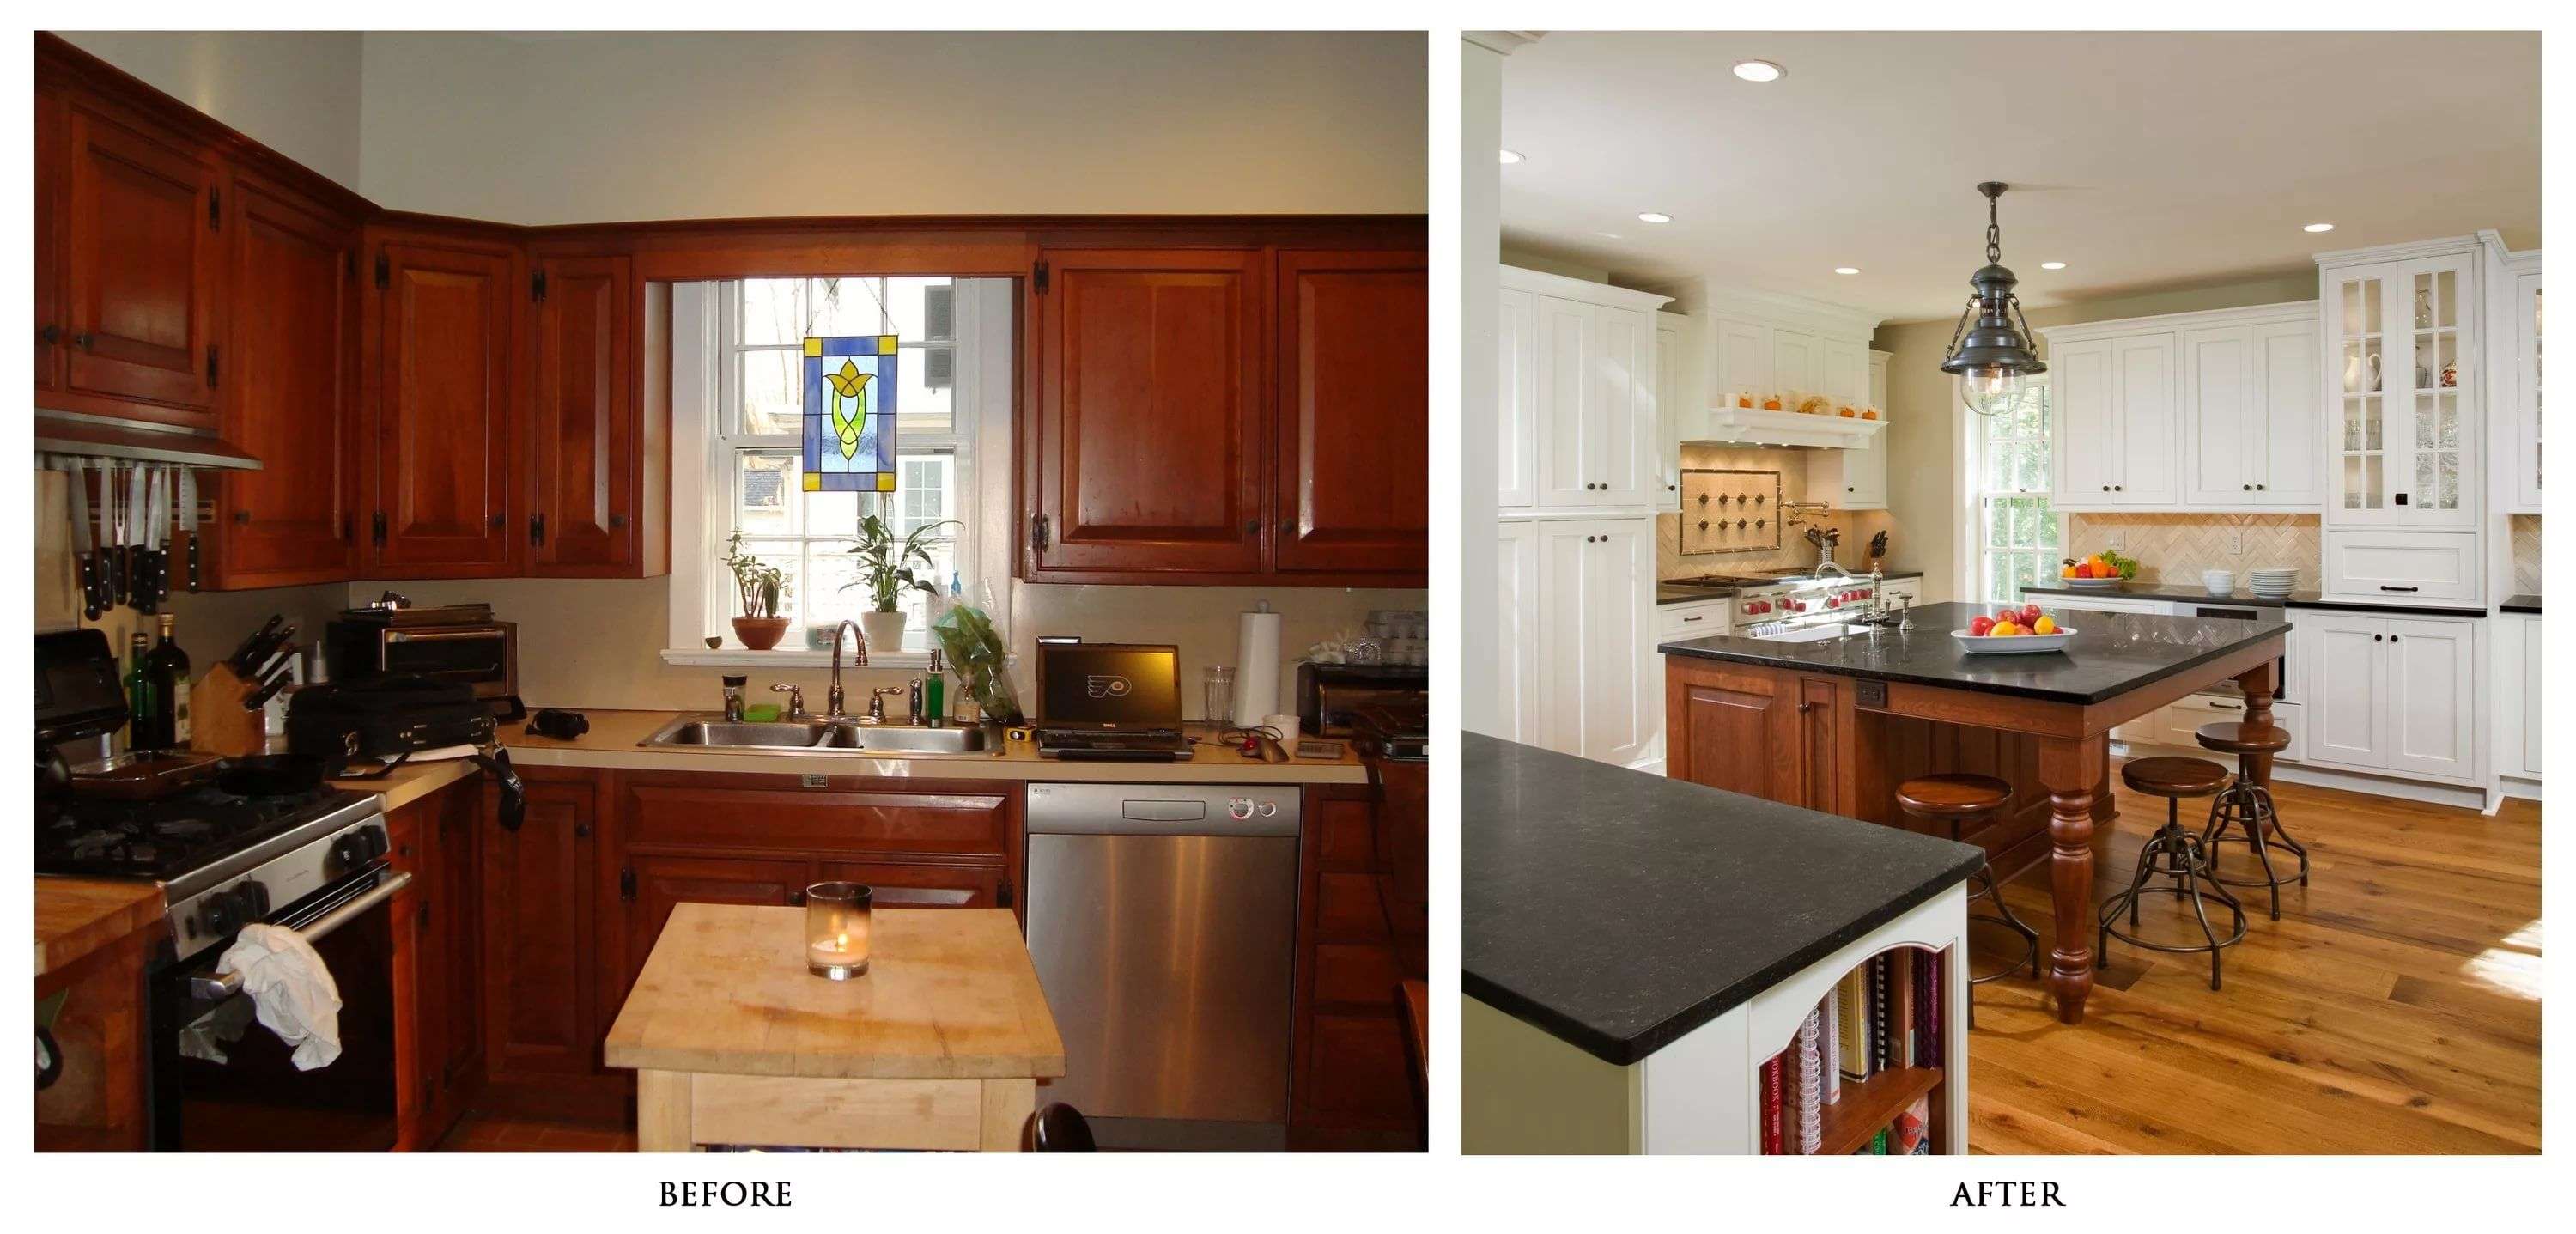 30 Small Kitchen Remodel Ideas Before And After 2019 Trend Ideas Layout Wood Small Diy W Kitchen Remodel Small Home Remodeling Remodeling Mobile Homes